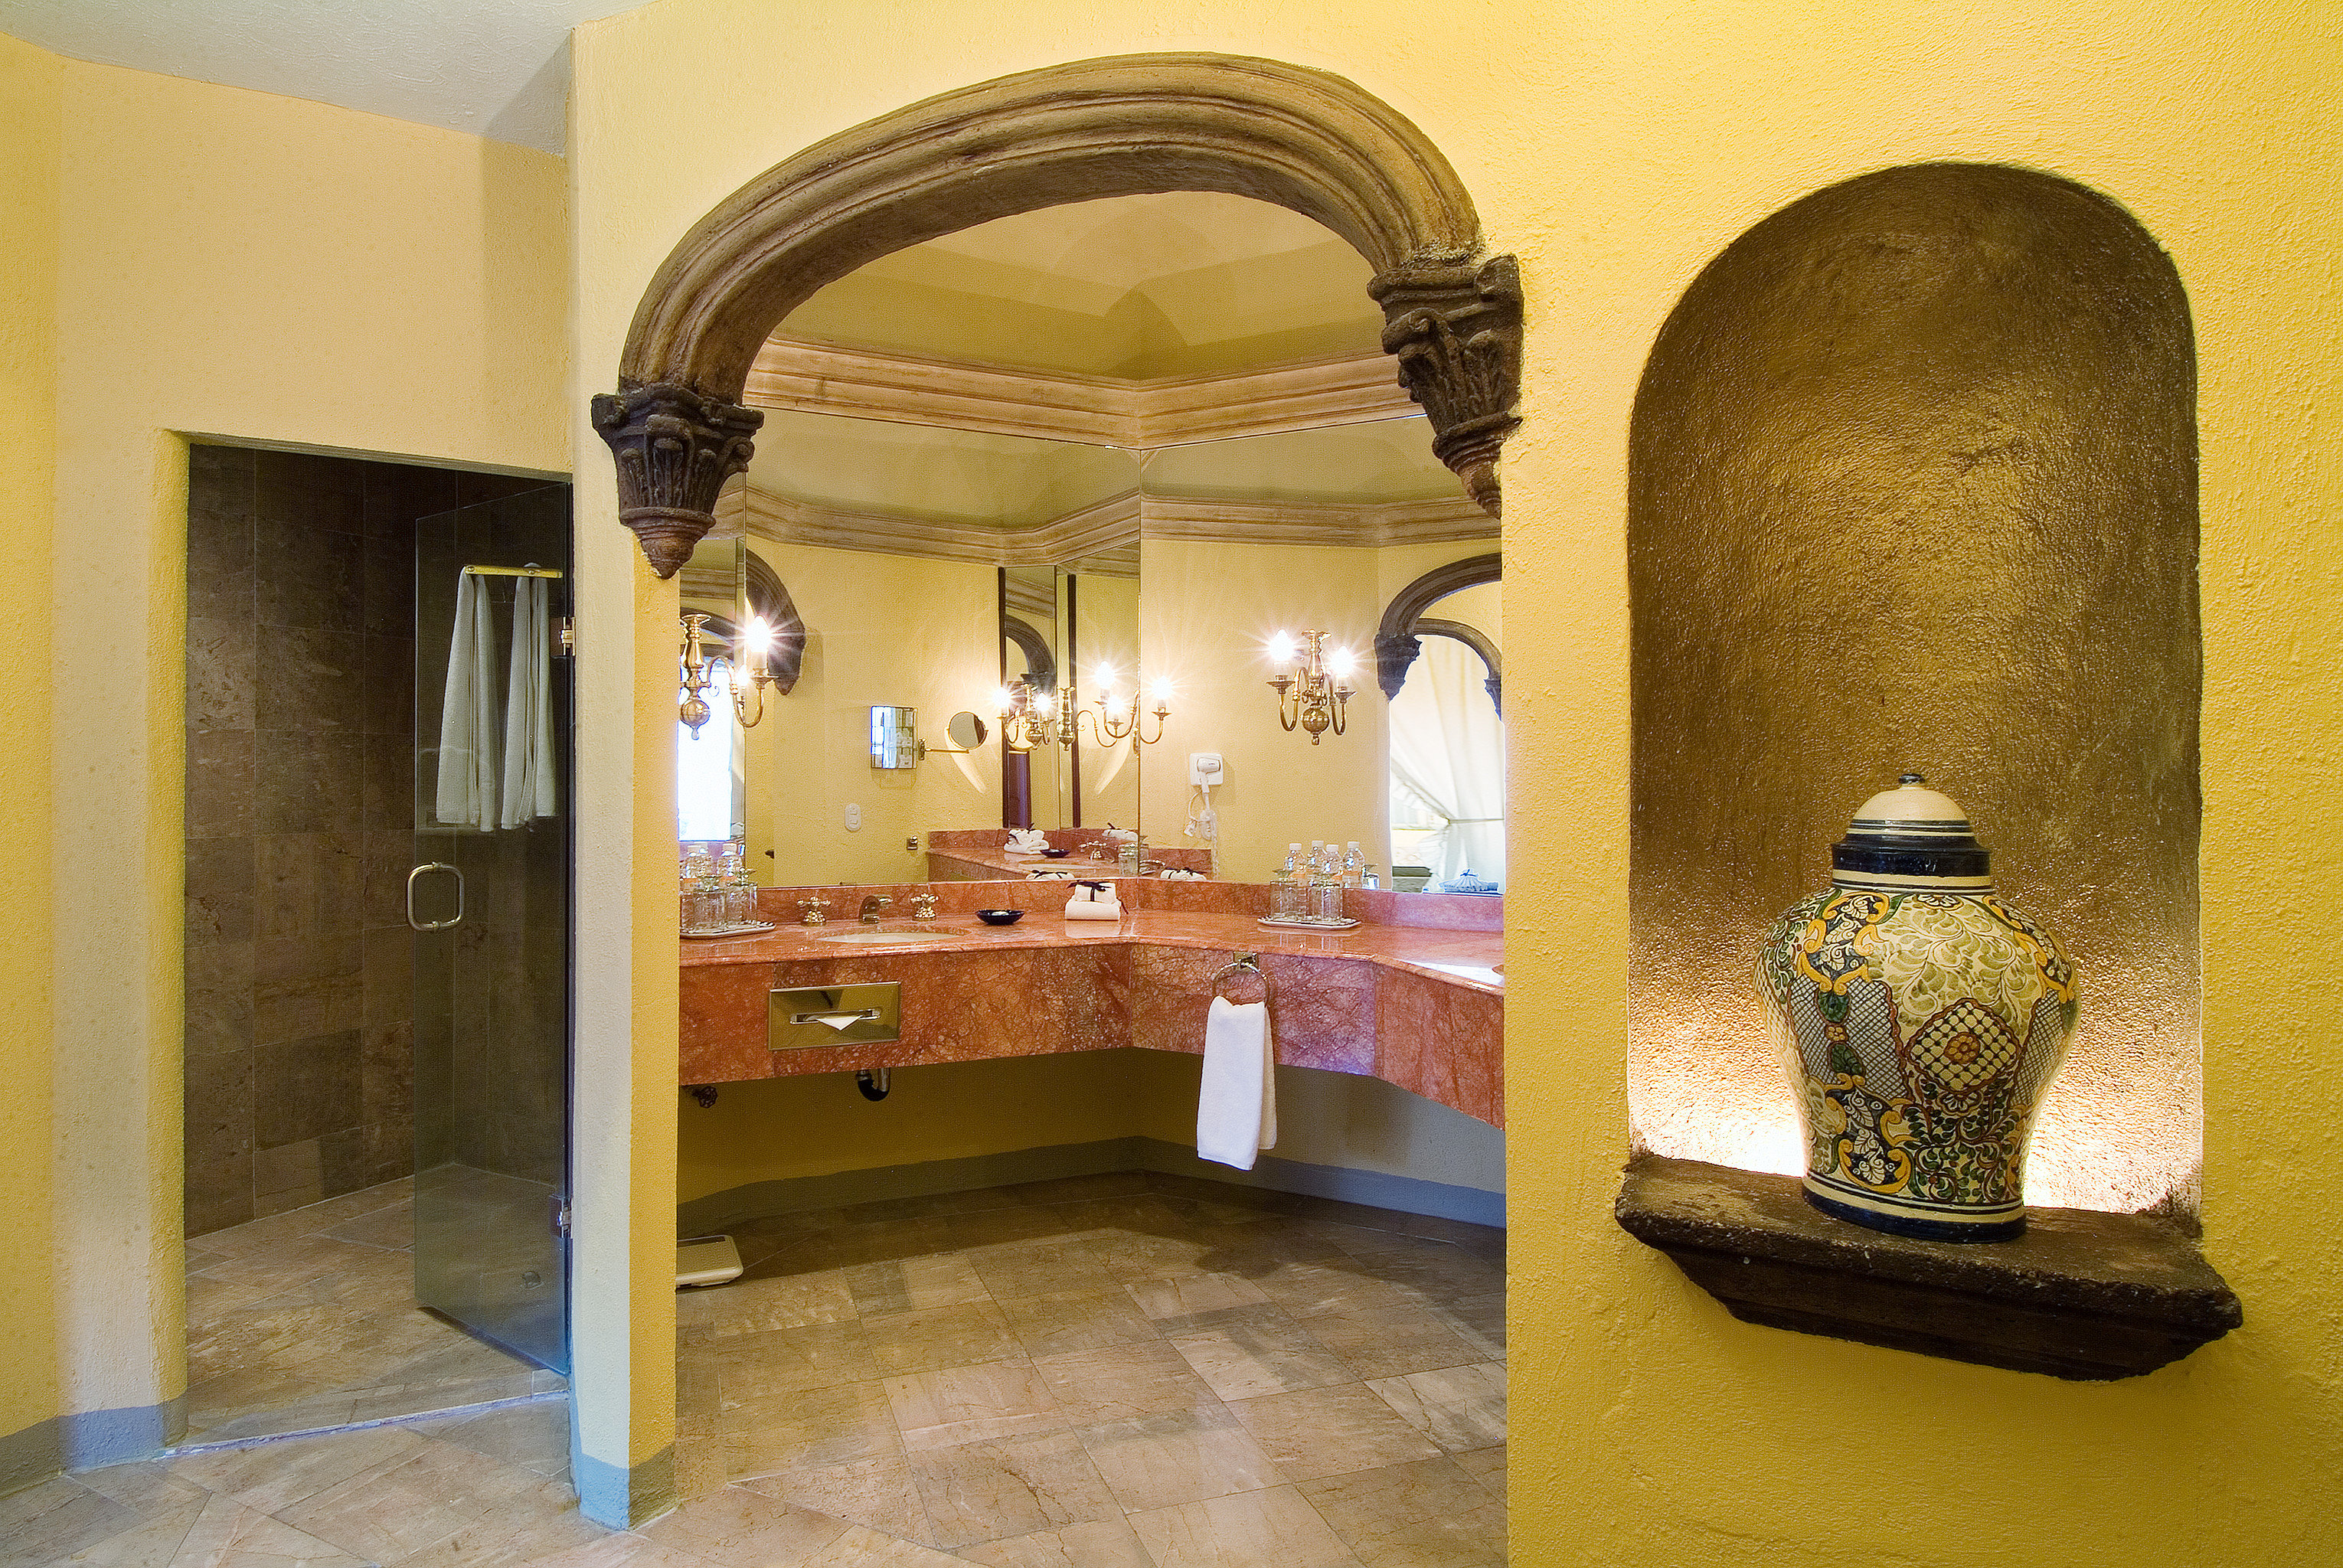 Bath Boutique Family Historic Honeymoon Romantic Town property arch ancient history tourist attraction